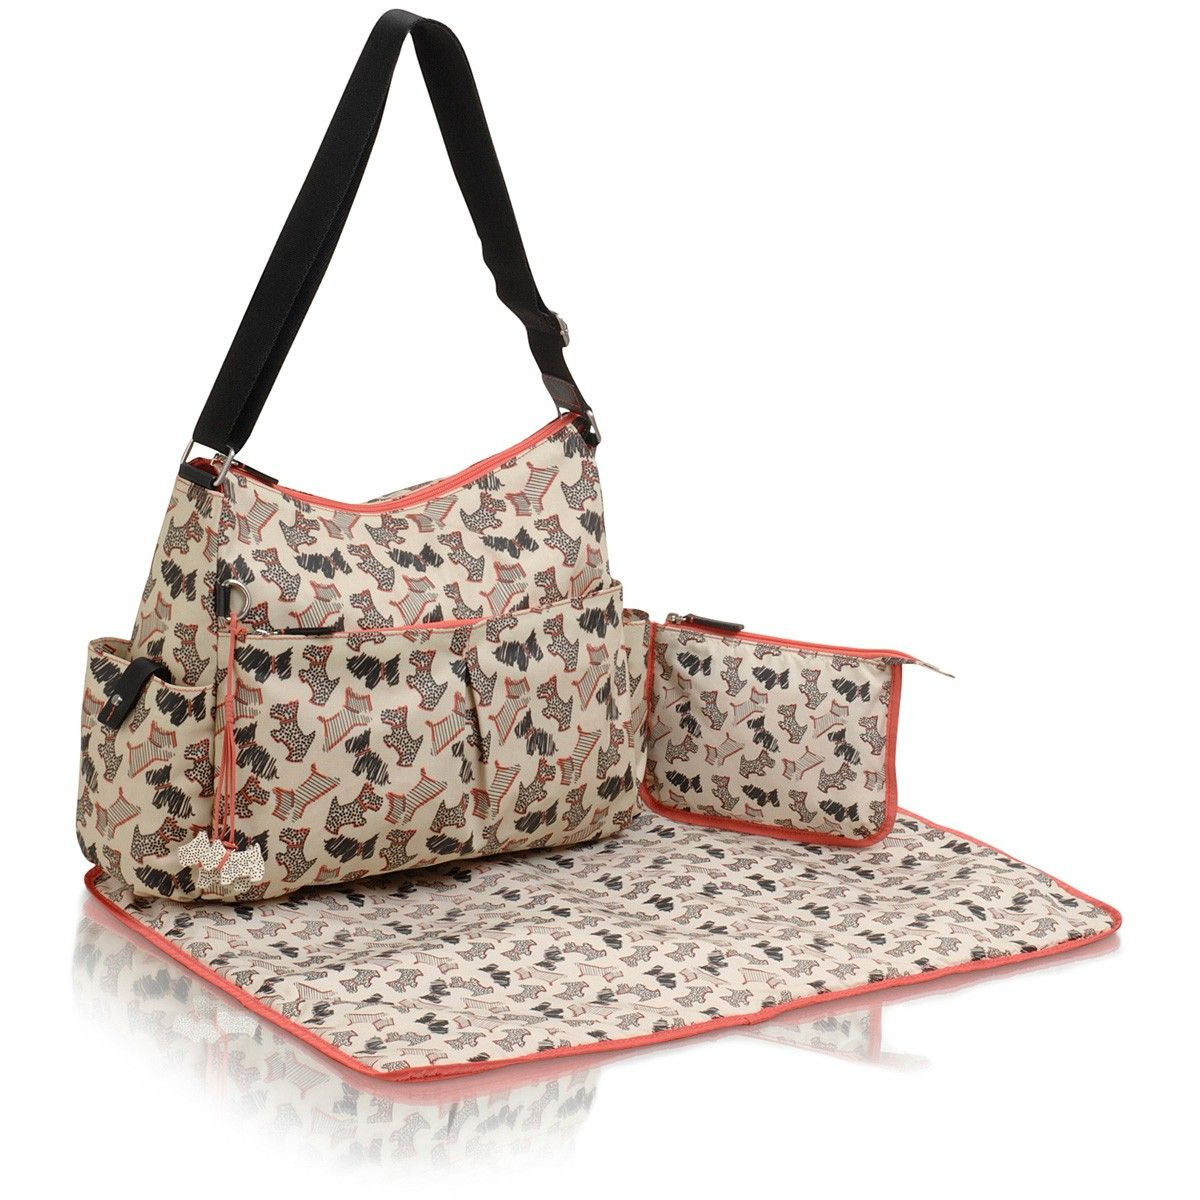 Fleet Street Large Baby Changing Bag > Buy Cross Body Bag's Online at Radley